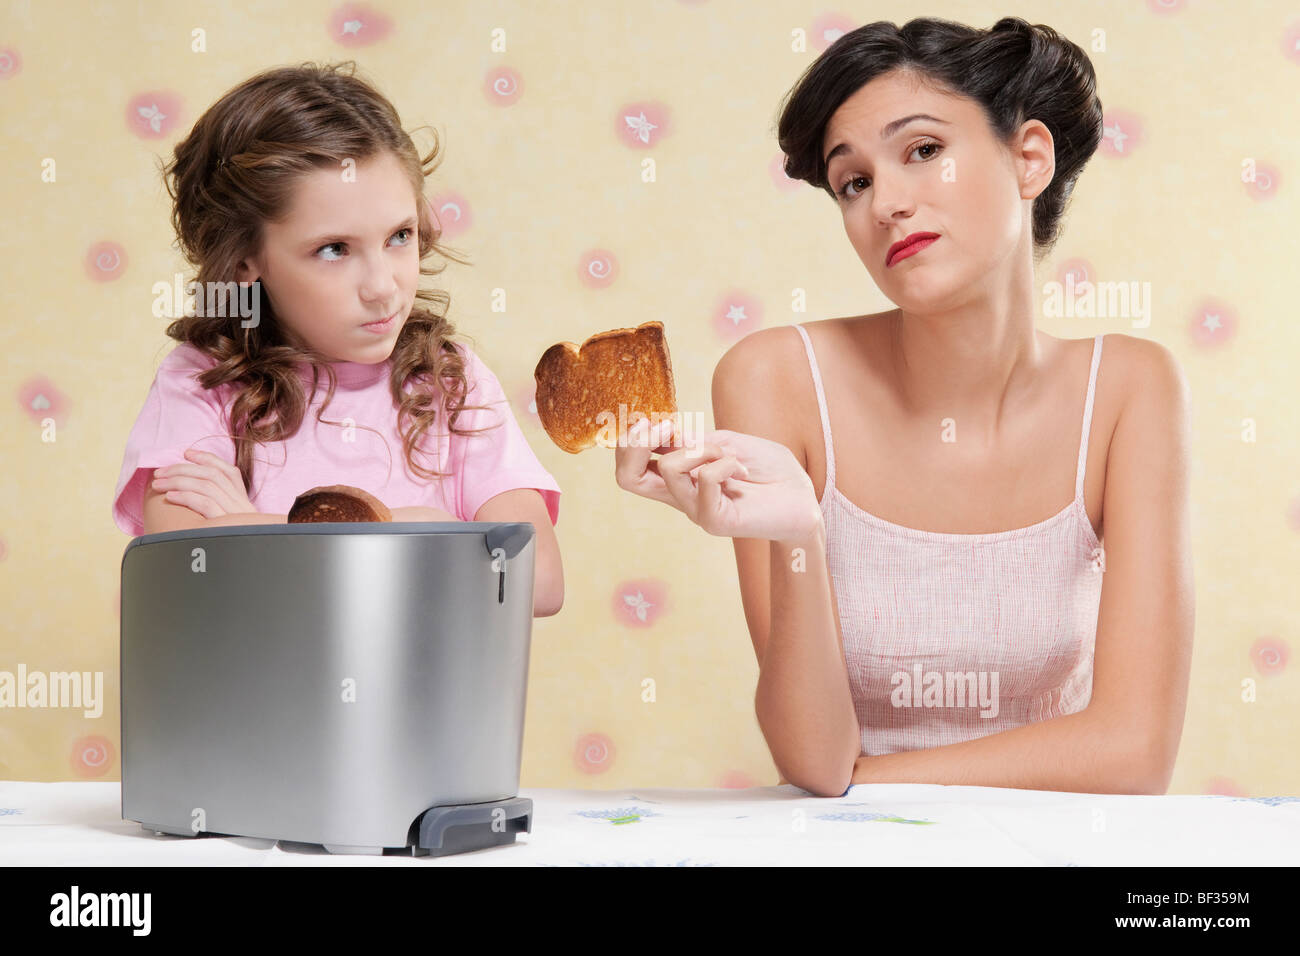 Woman giving her daughter a burnt toast - Stock Image